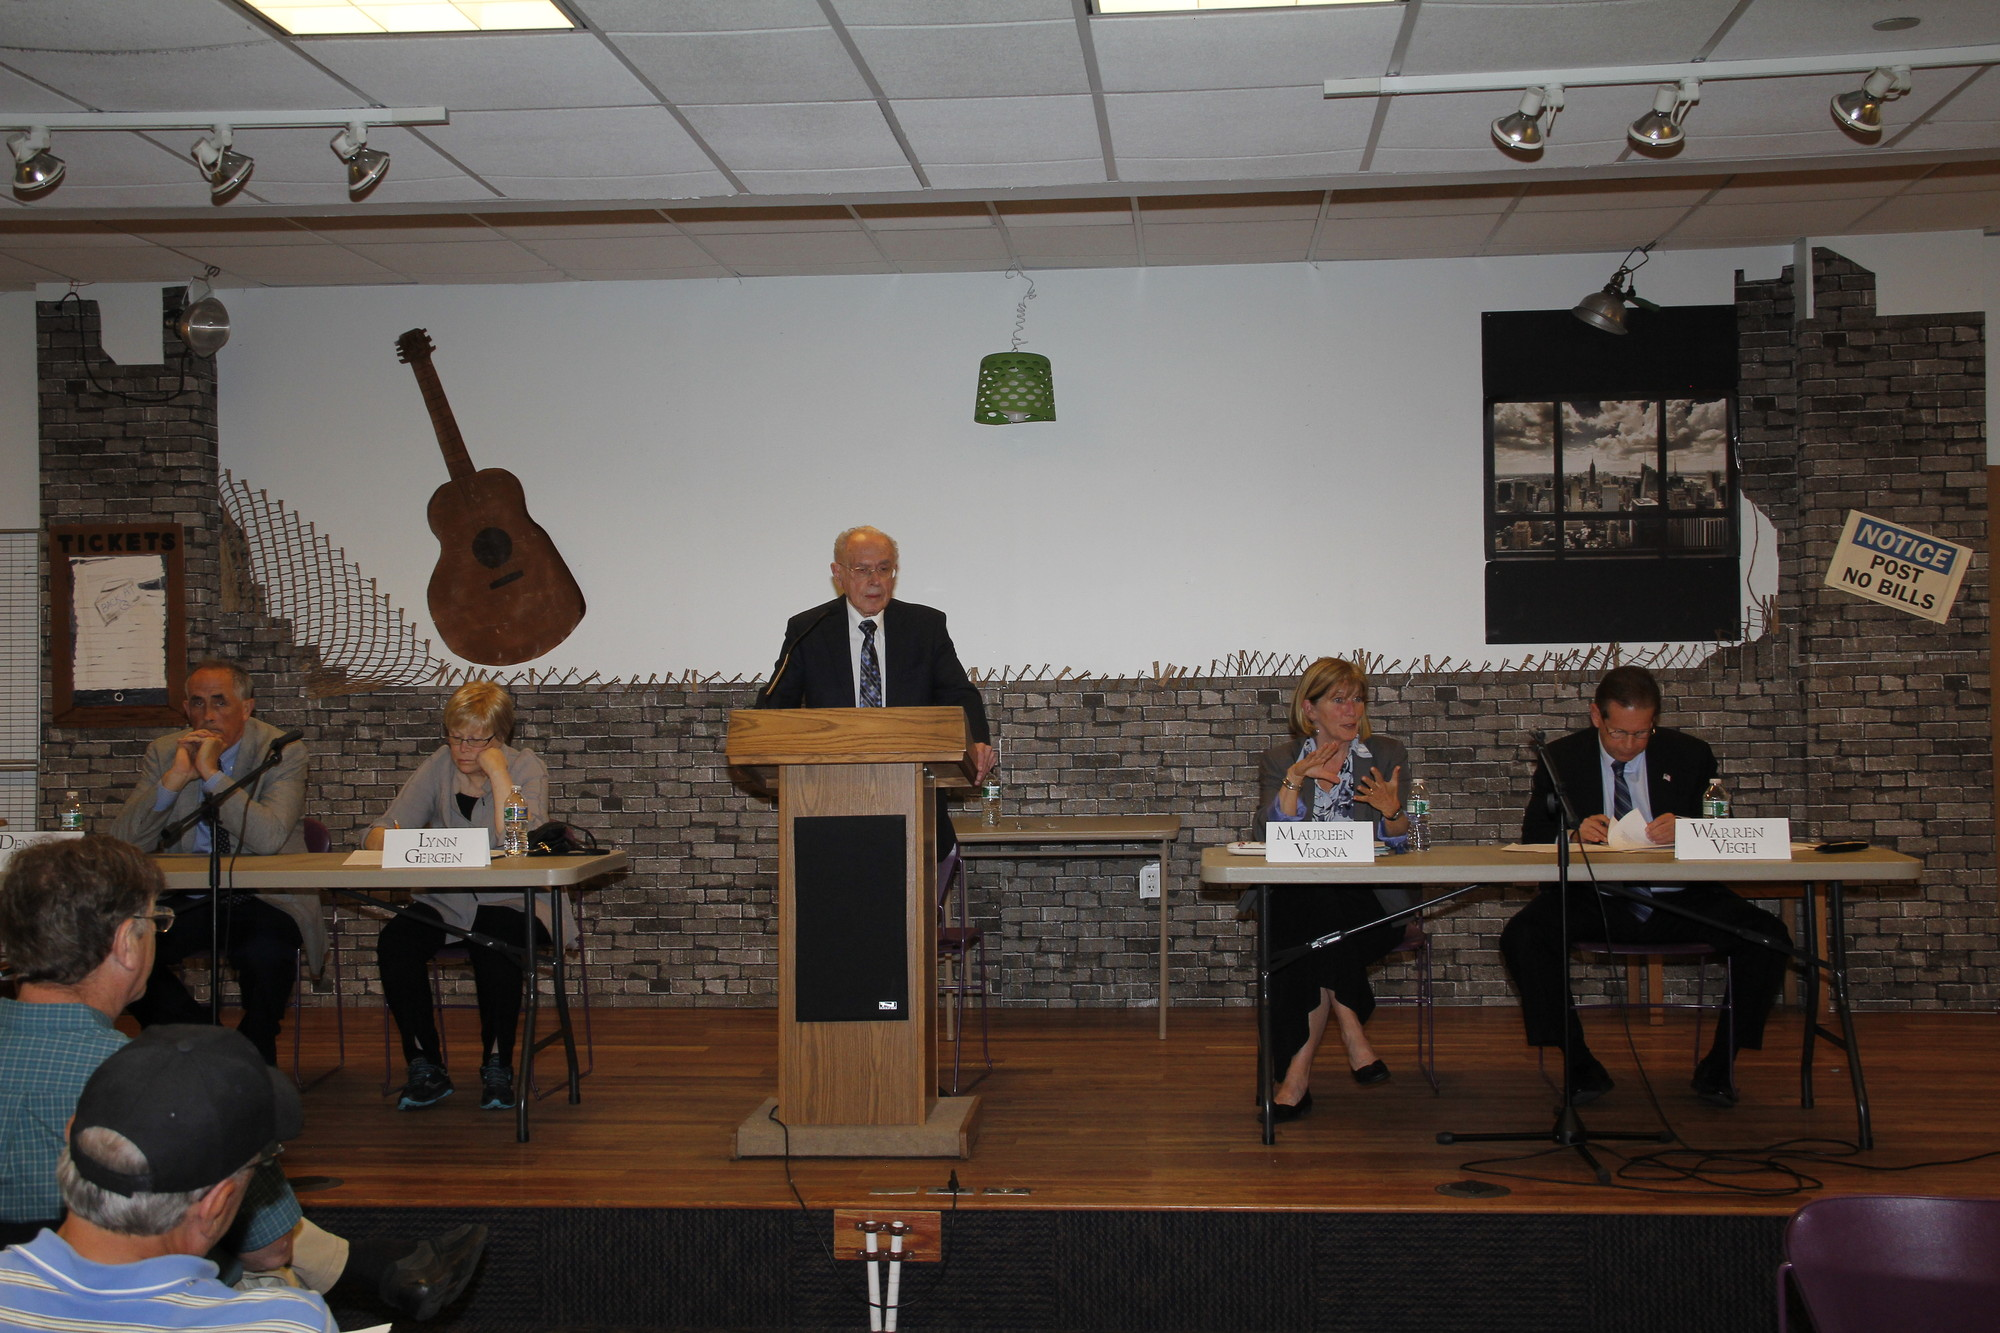 School board candidates squared off at a forum at the library last week.